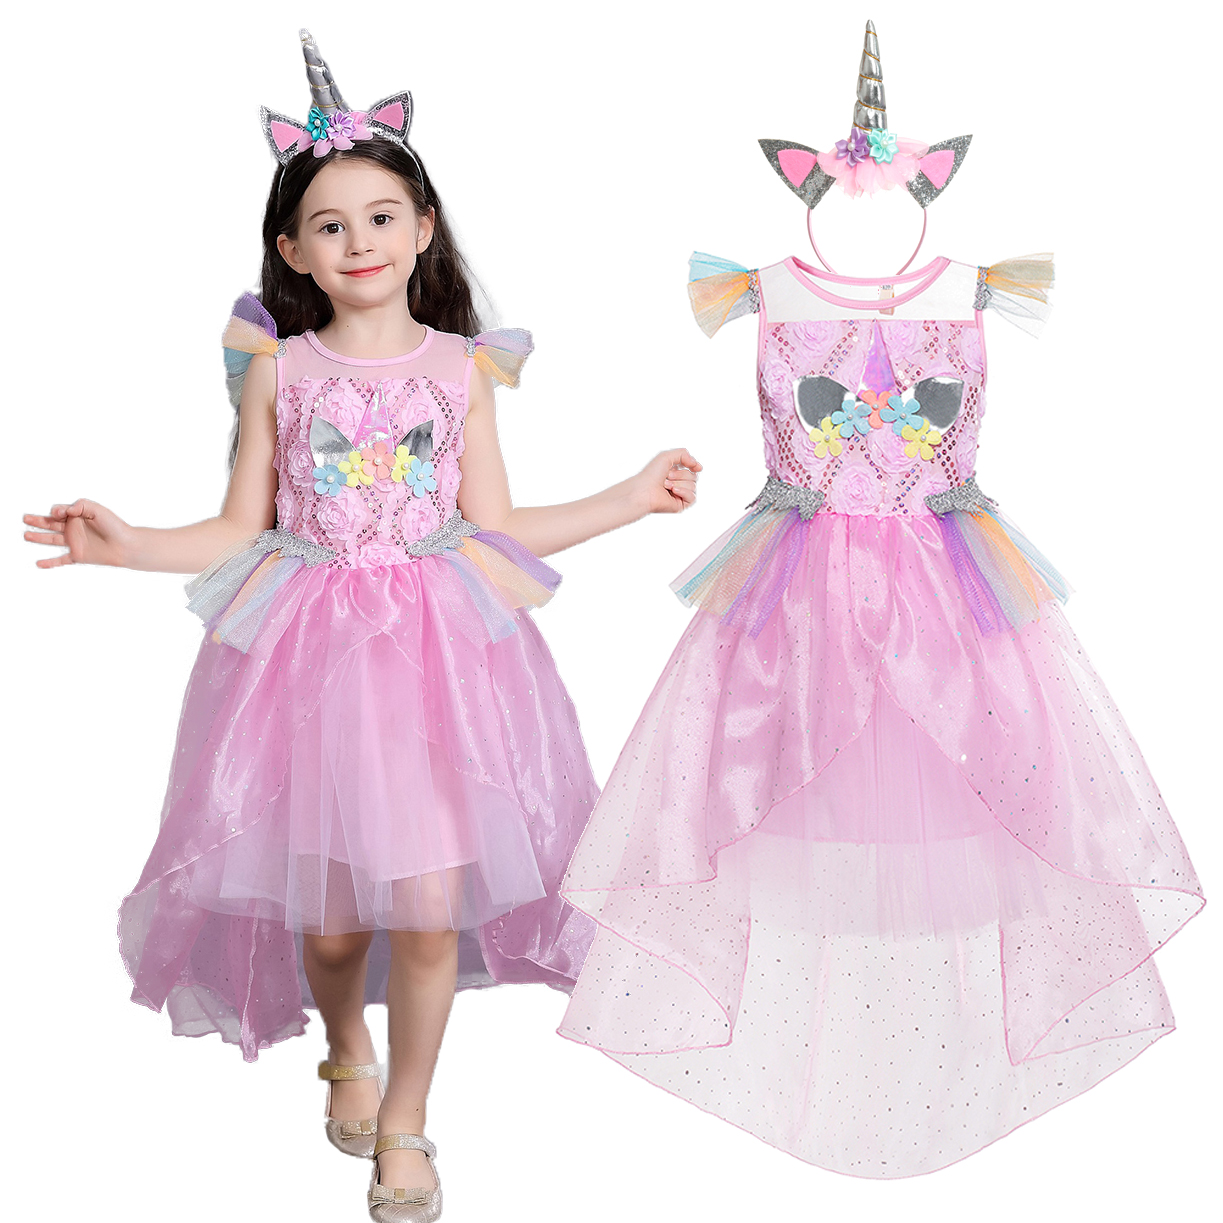 Girls Unicorn Dress with Headband Princess Dressing Up Costume Outfit Pink Age 2-8 Years